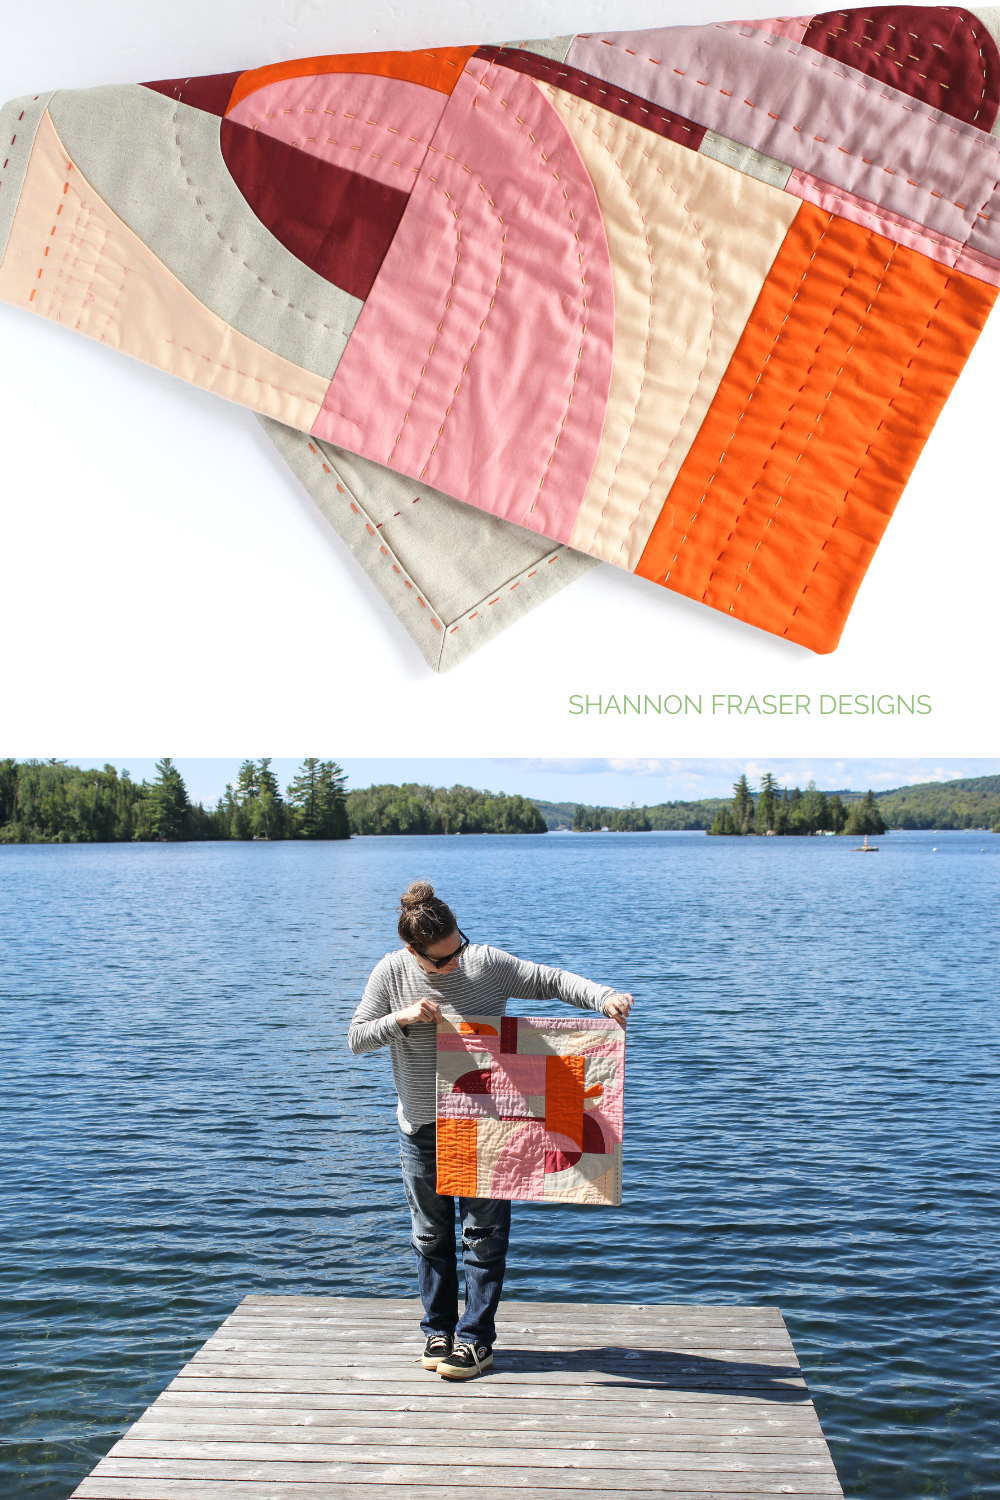 Cloud Surfing improv quilted wall hanging entirely hand quilted. Shannon holding the art quilt in the summer wild in front of a lake | Quilts I completed in 2020 | Shannon Fraser Designs #quiltsinthewild